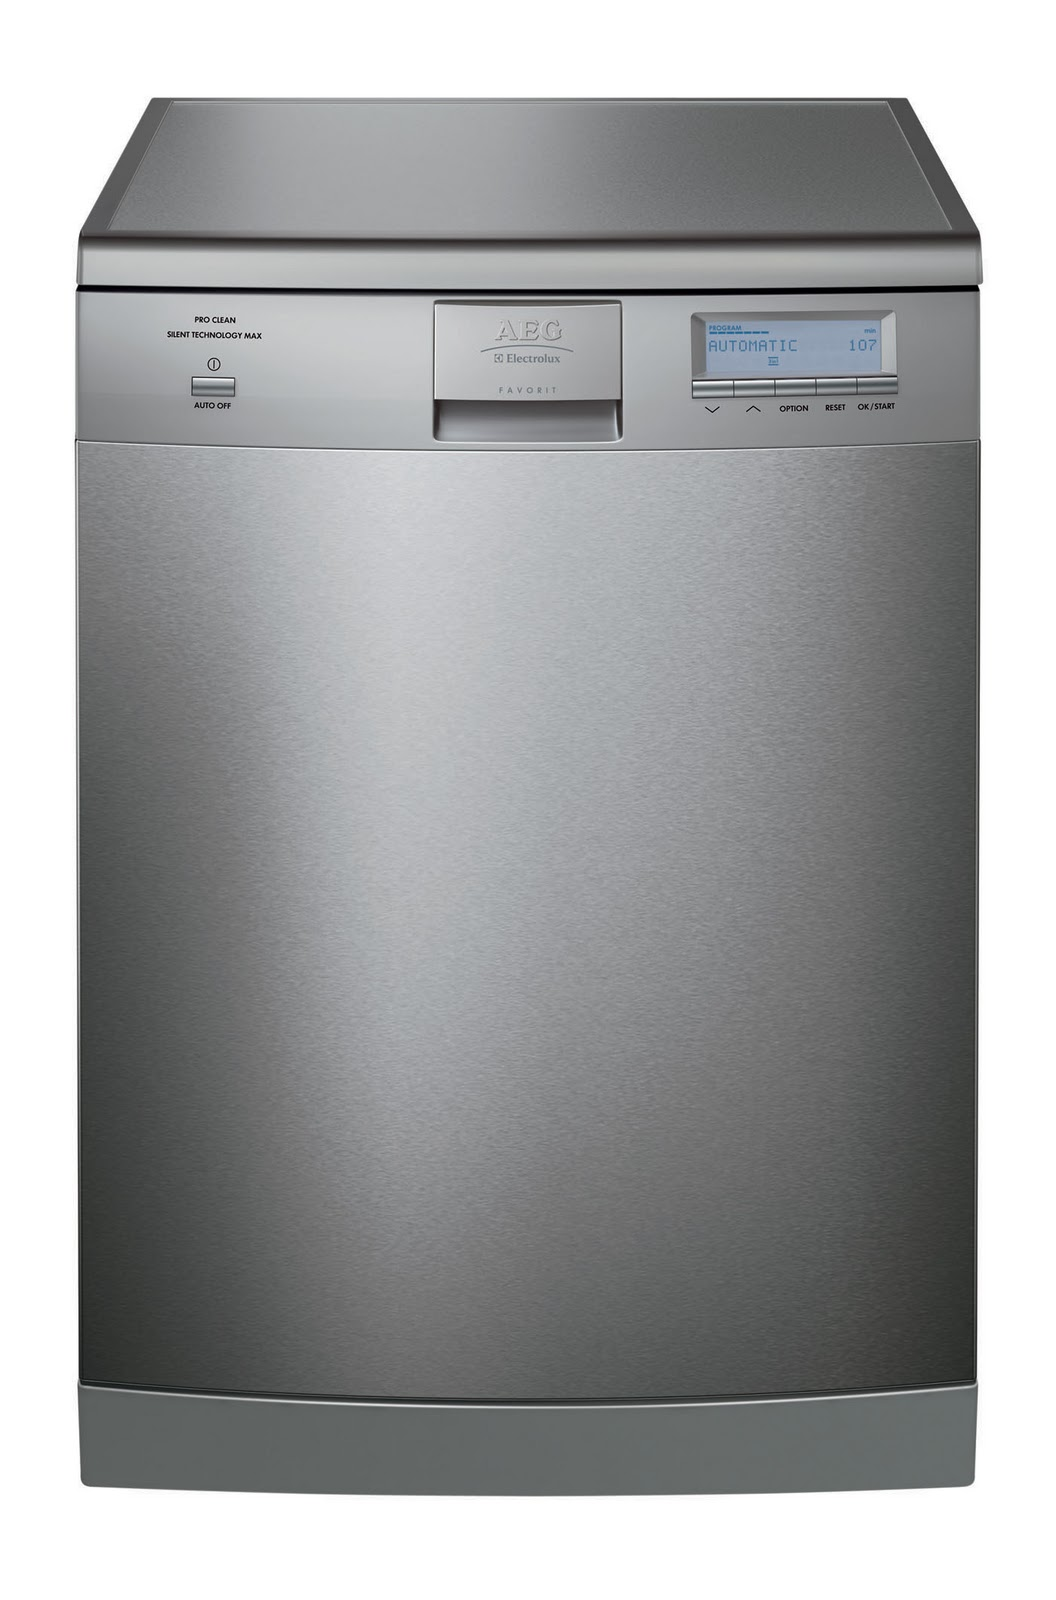 home appliances Shop for home appliances at walmart: kitchen appliances, vacuums, refrigerators, freezers, washers, dryers, ovens, and ranges at walmartcom.